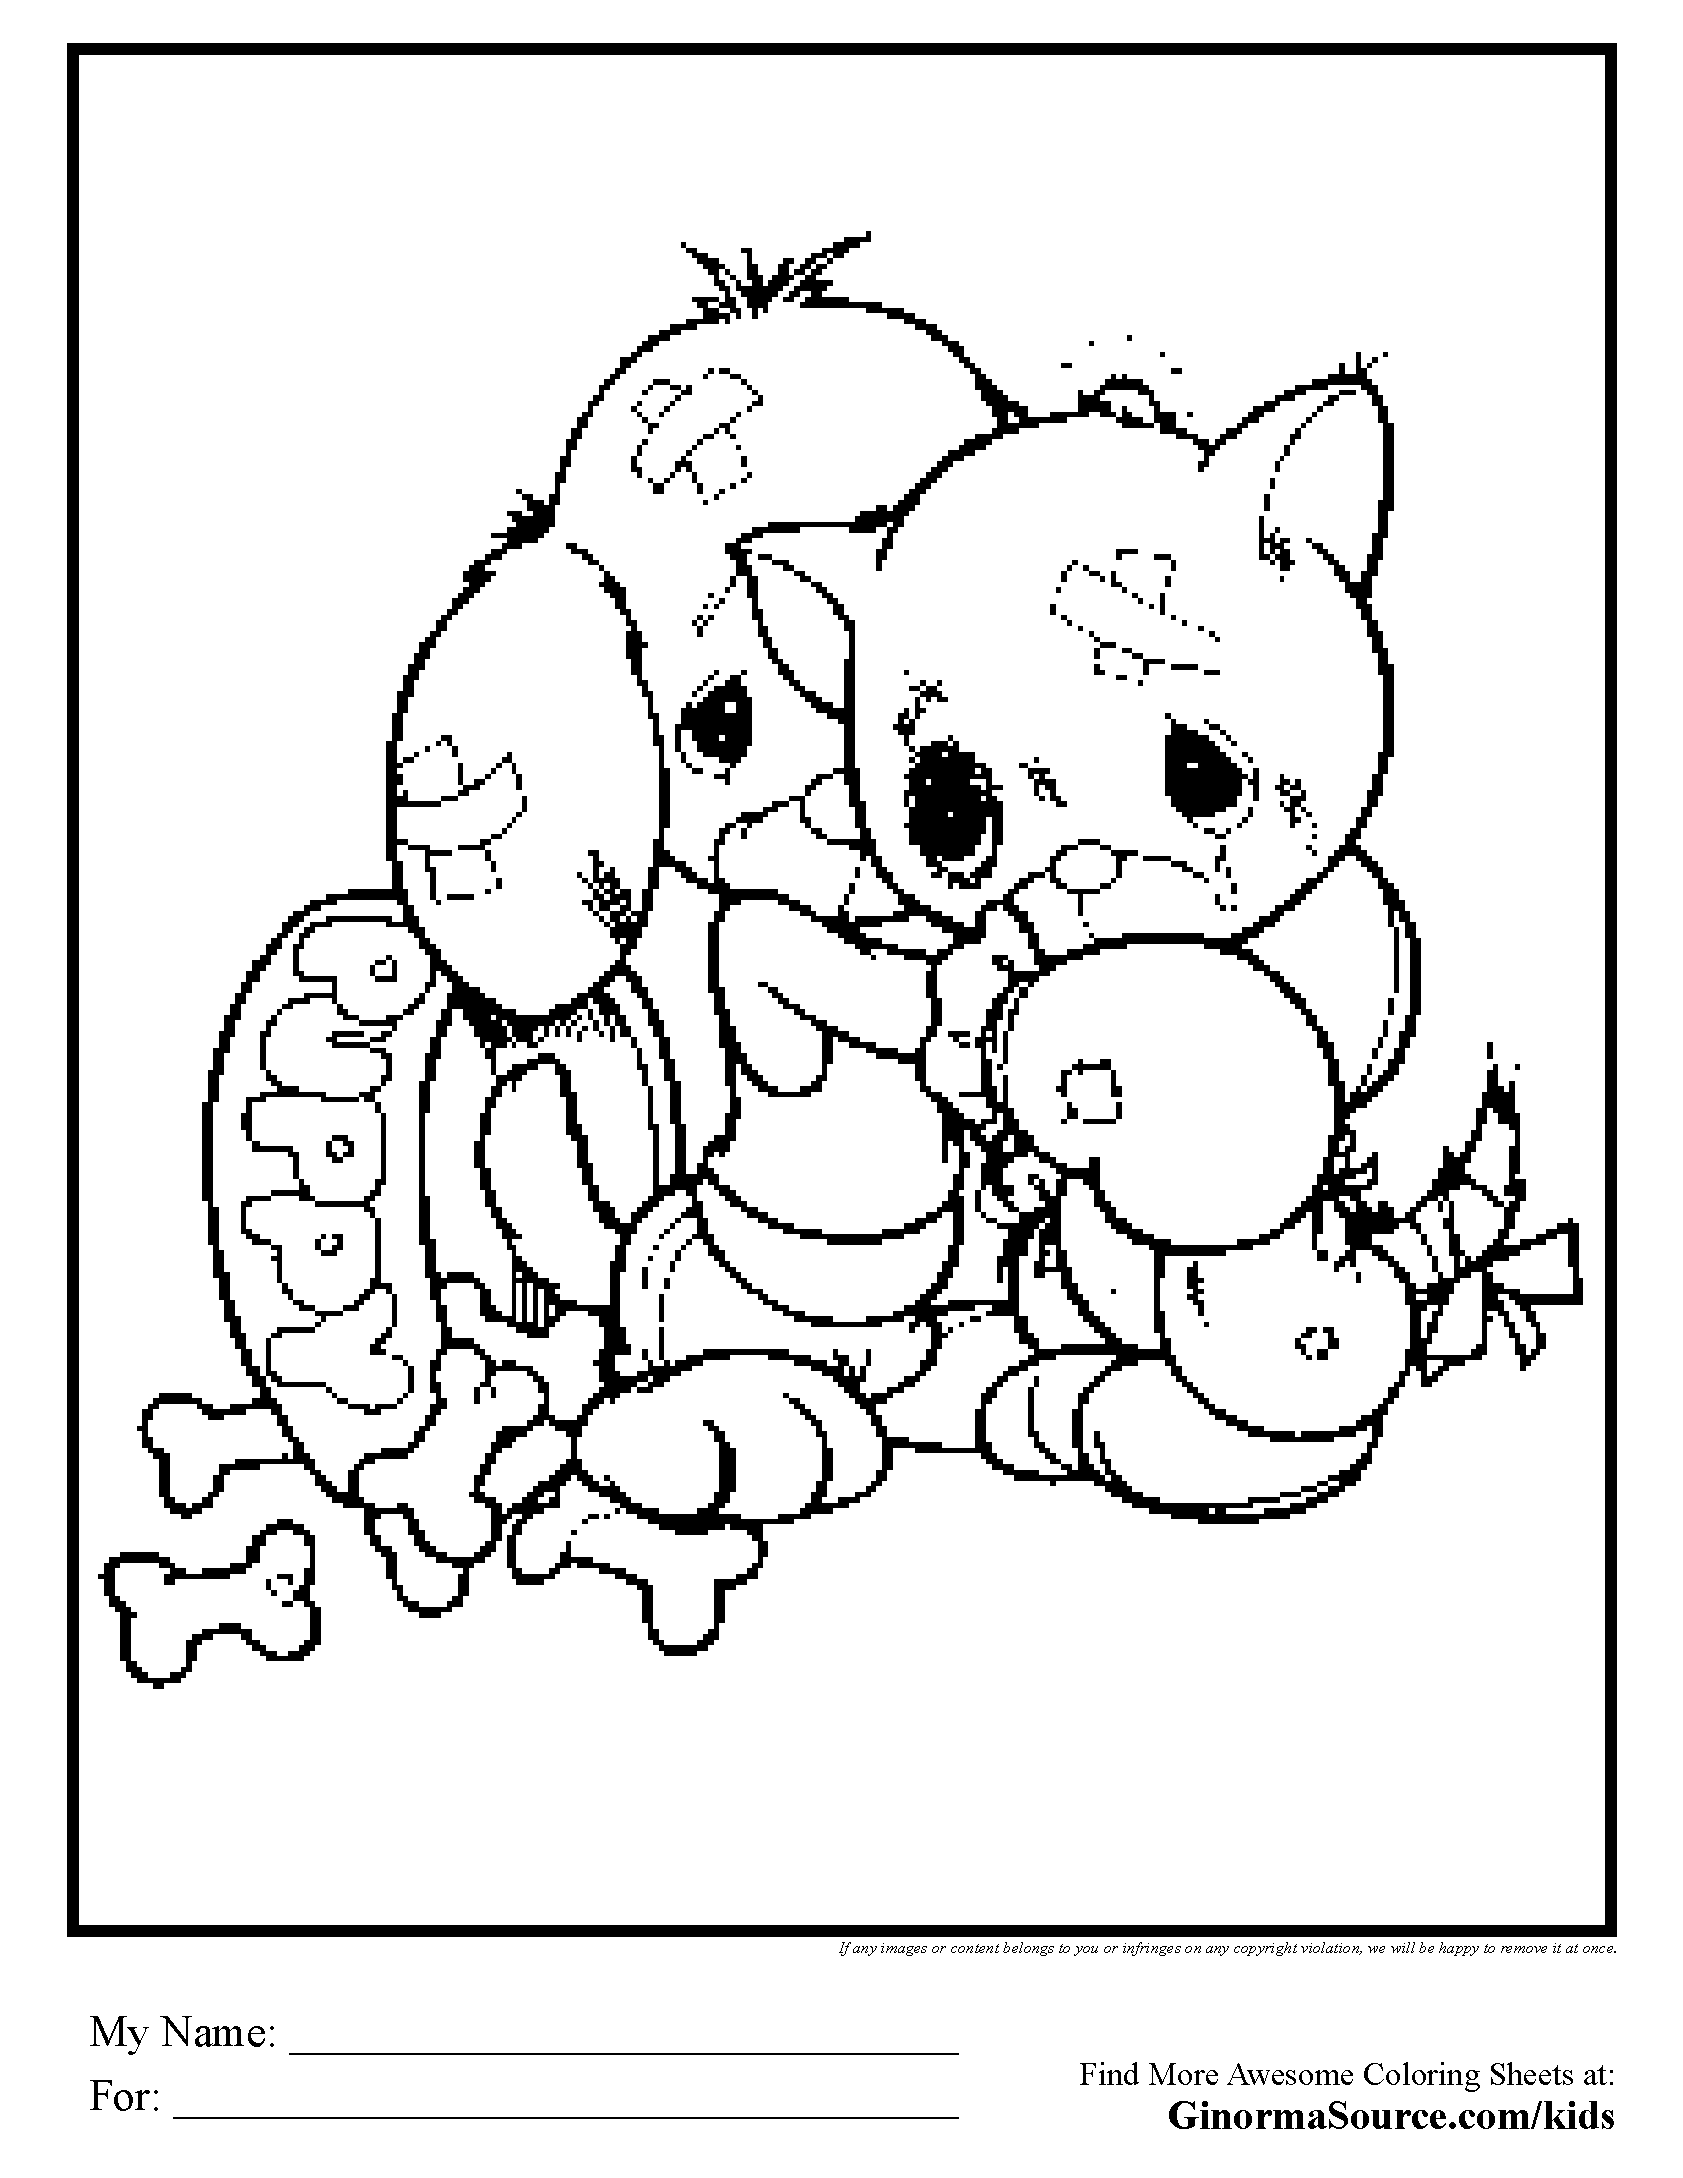 Coloring book kittens - Advanced Puppy Coloring Pages Coloring Pages For All Ages